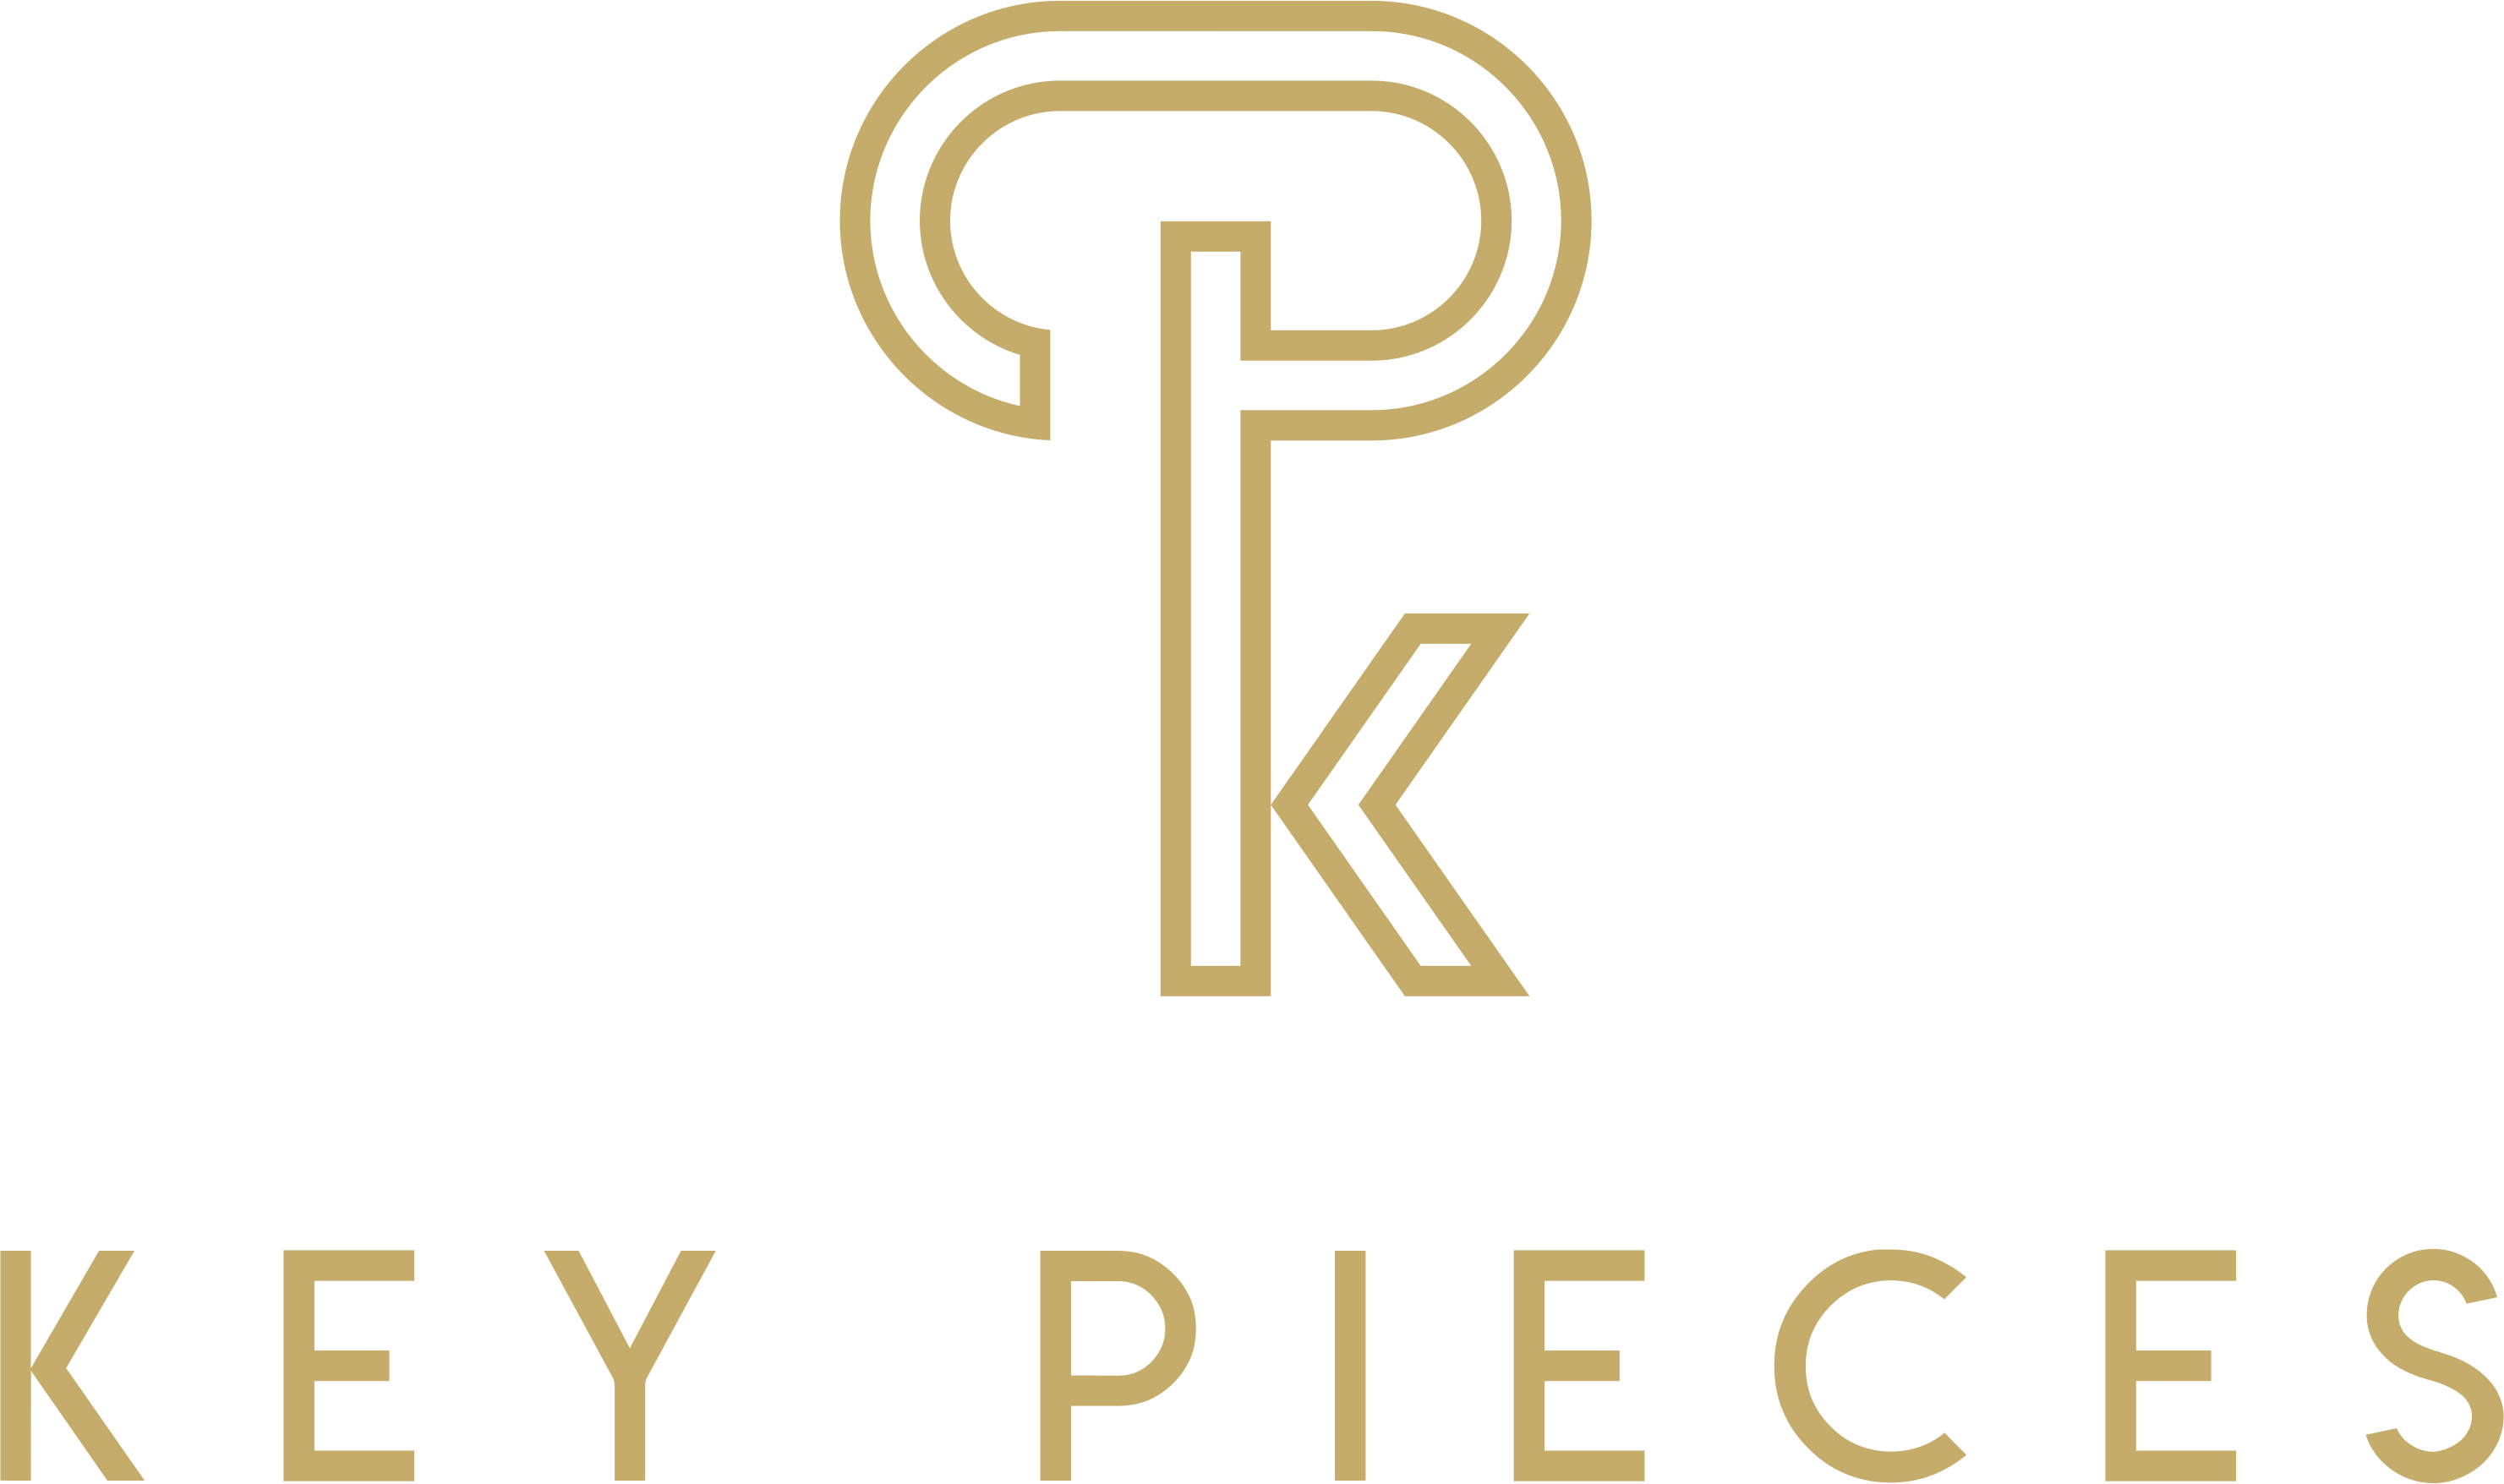 Key Pieces Clothing Line